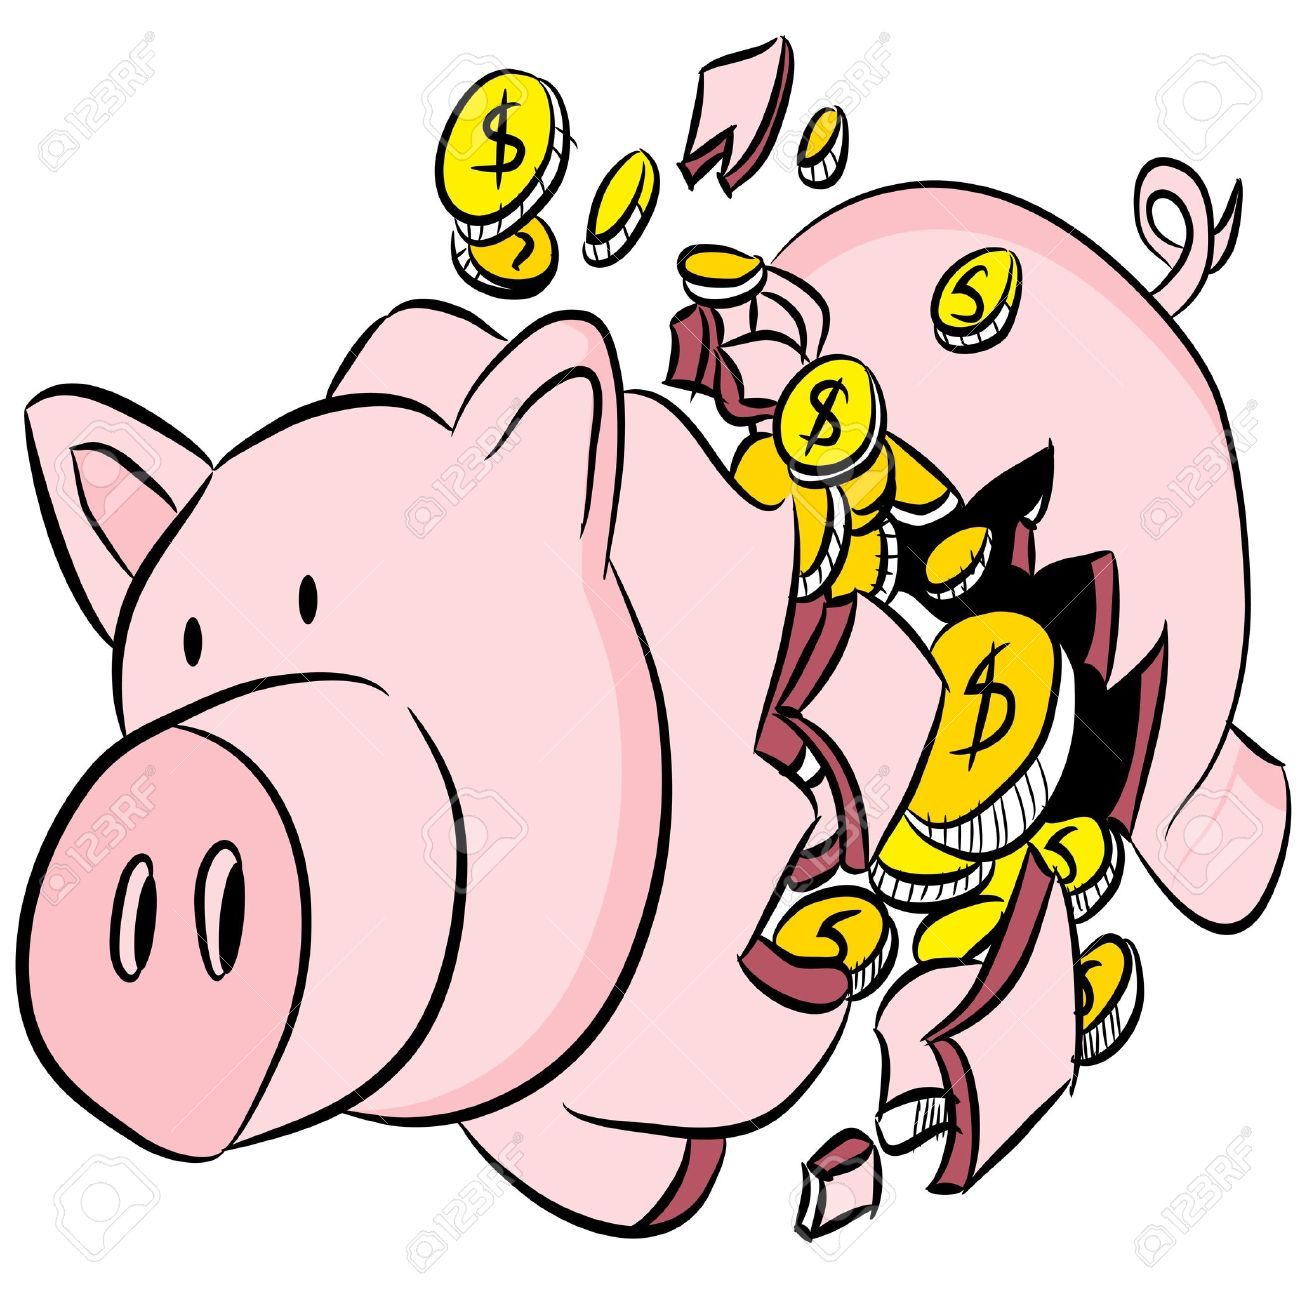 an image of a broken piggy bank royalty free cliparts vectors and rh 123rf com